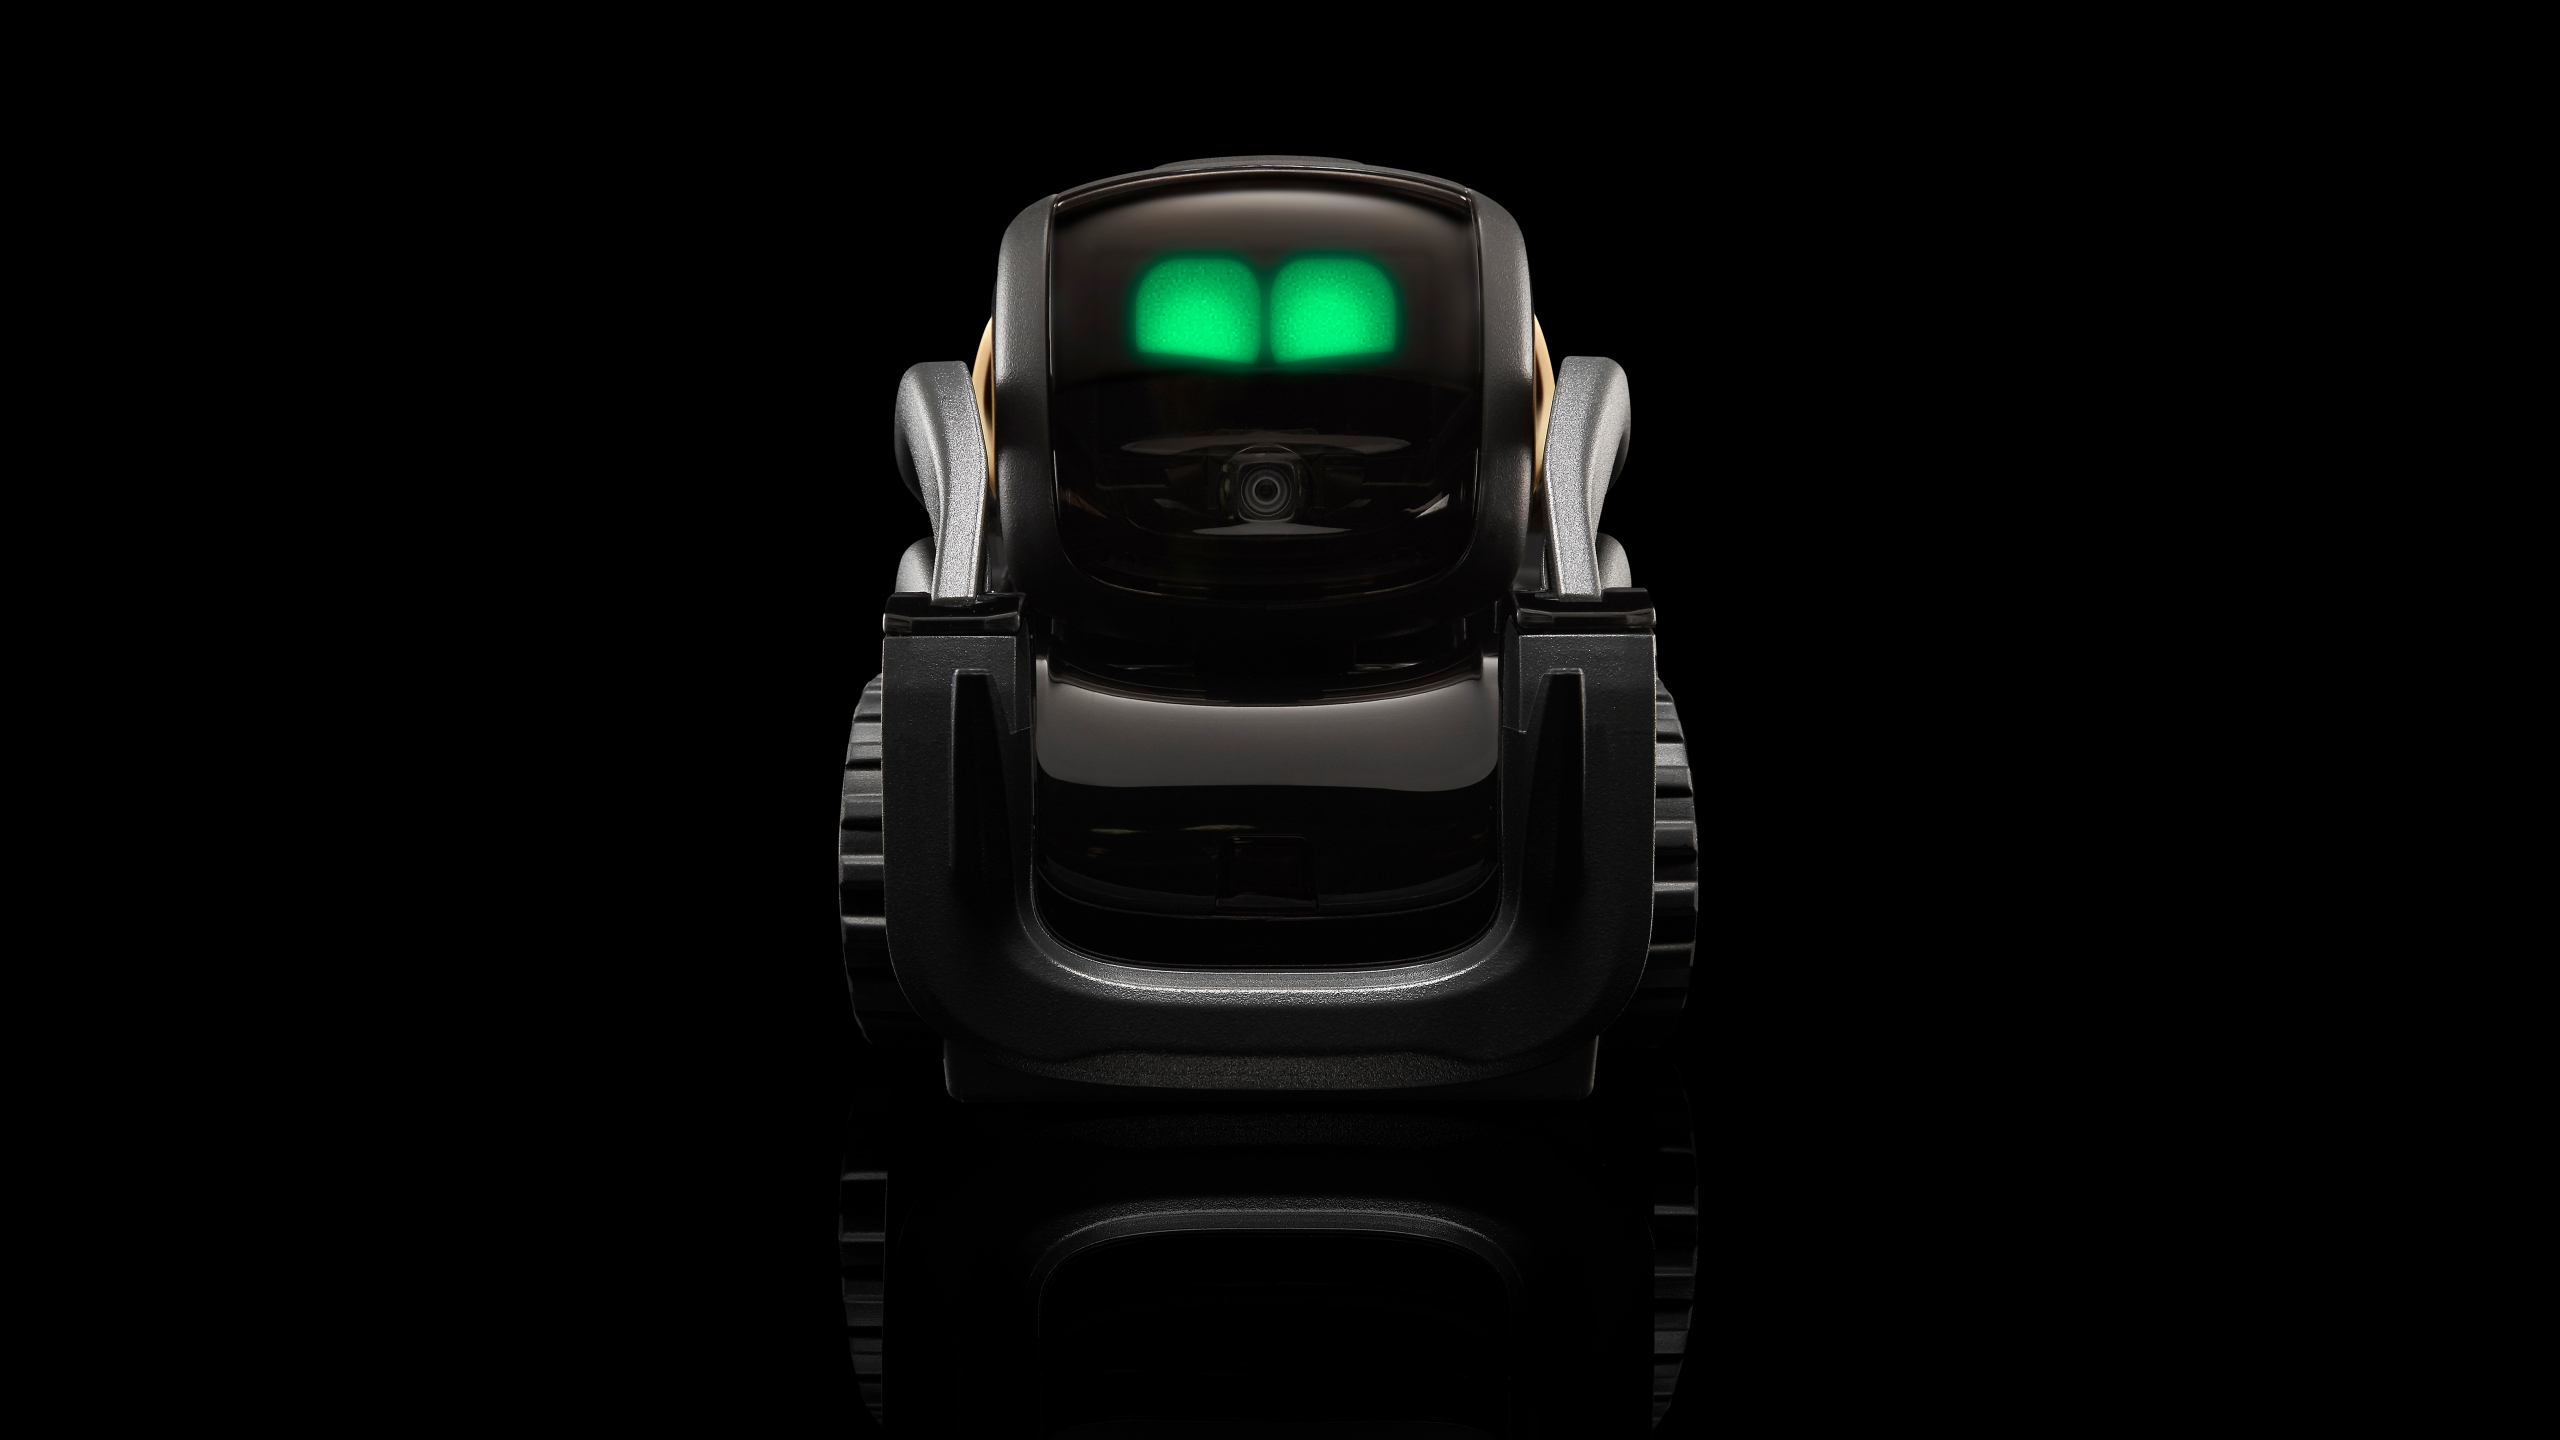 2560x1440 Anki Vector Robot (A Robot For Your Home) Now Available For